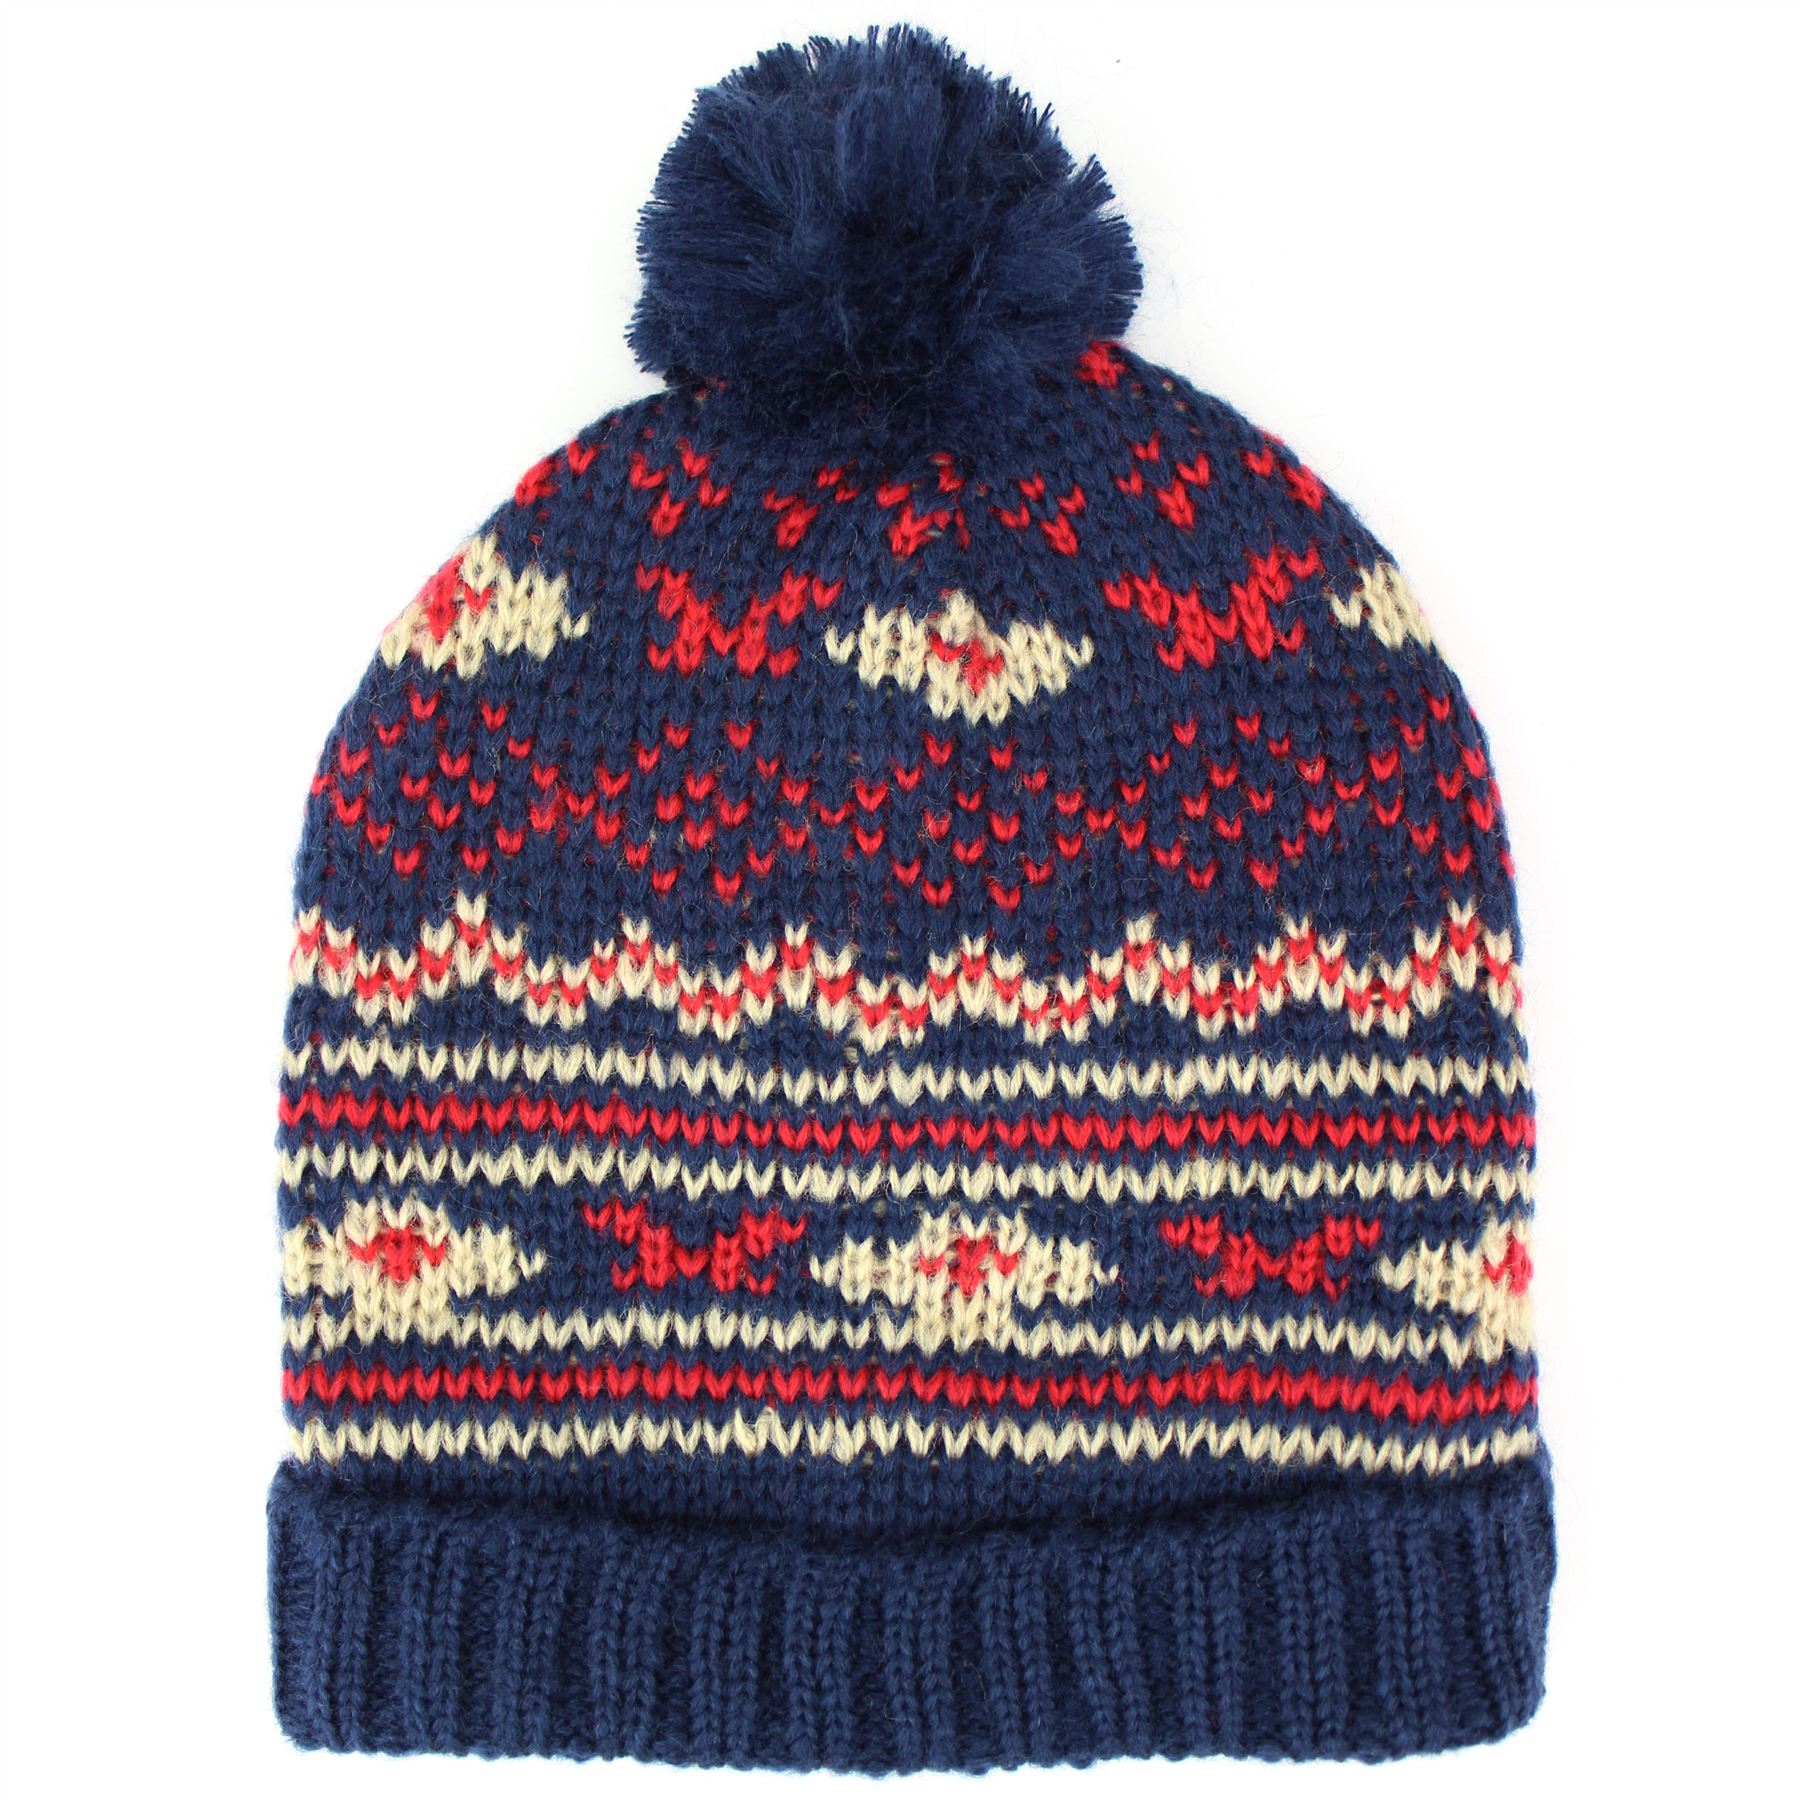 Pom Pom Beanie Knitting Pattern : Hat Beanie Bobble Fairisle Winter Pom Fair Isle Knitted Warm Ski Pattern